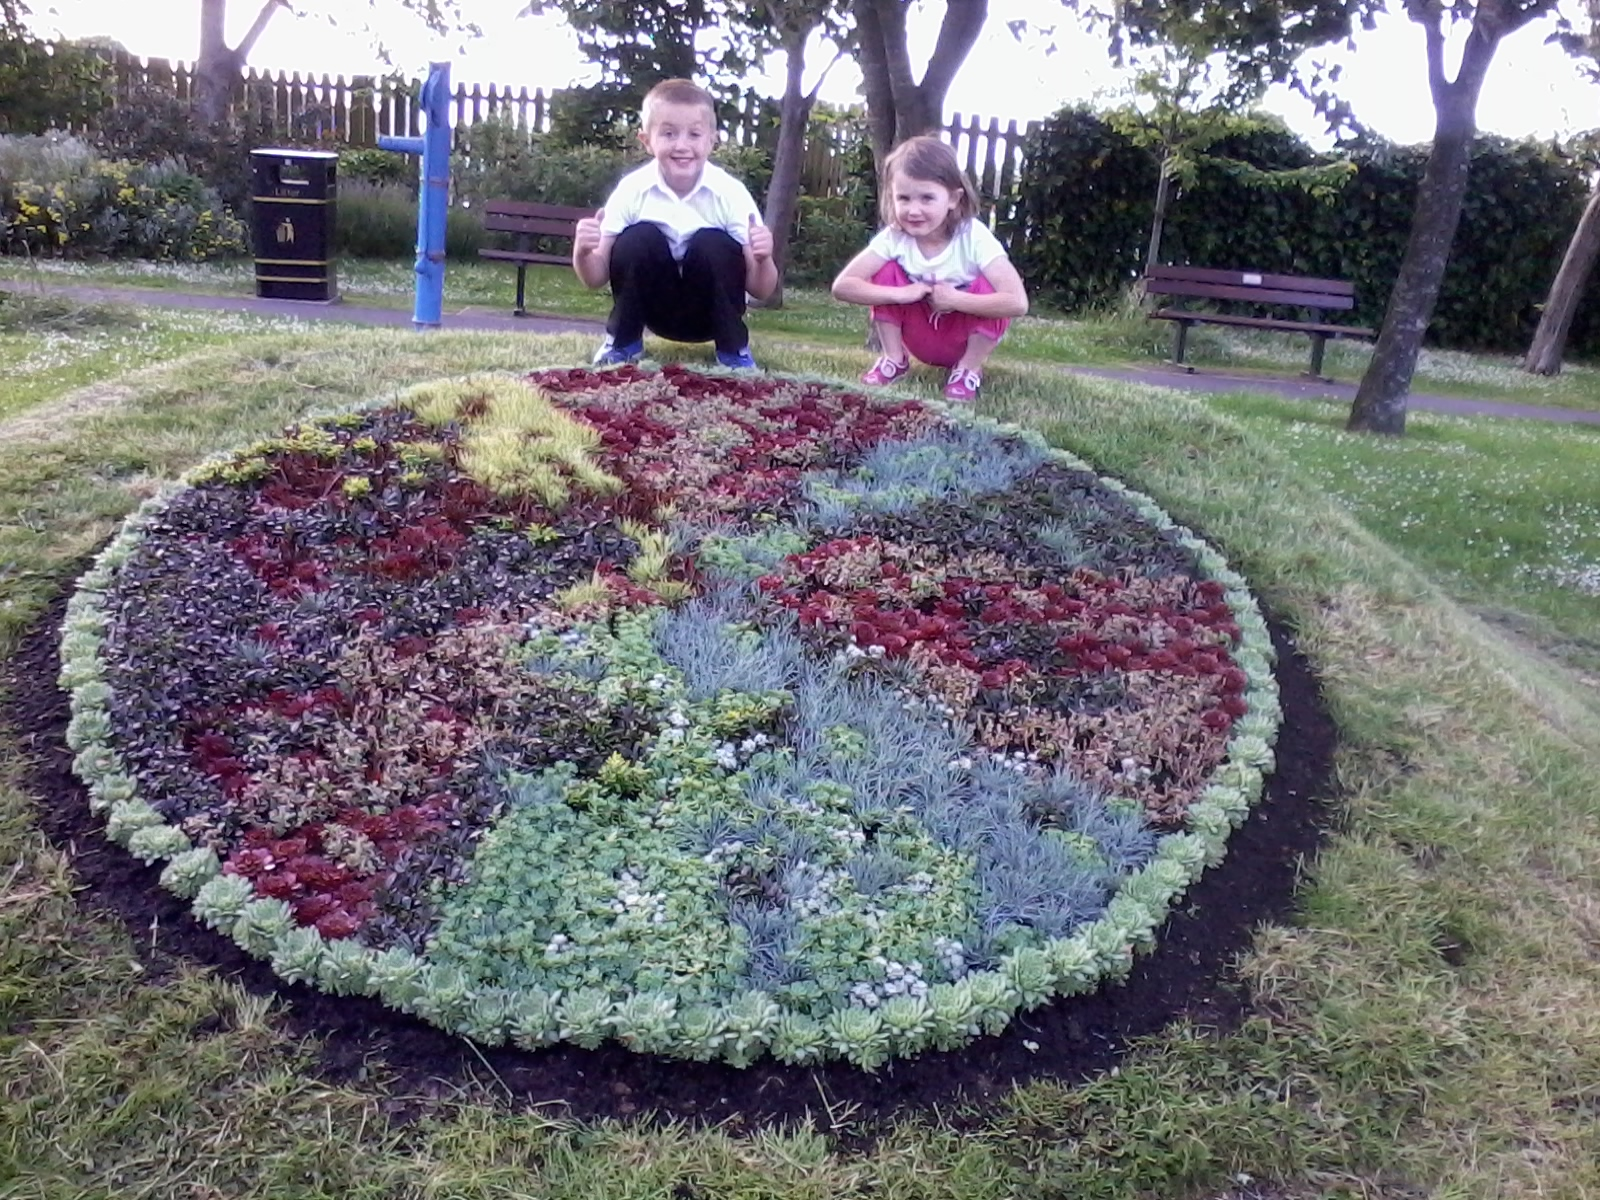 Ewan Lyes, aged six, and his sister Shelby, aged four, with the winning design.